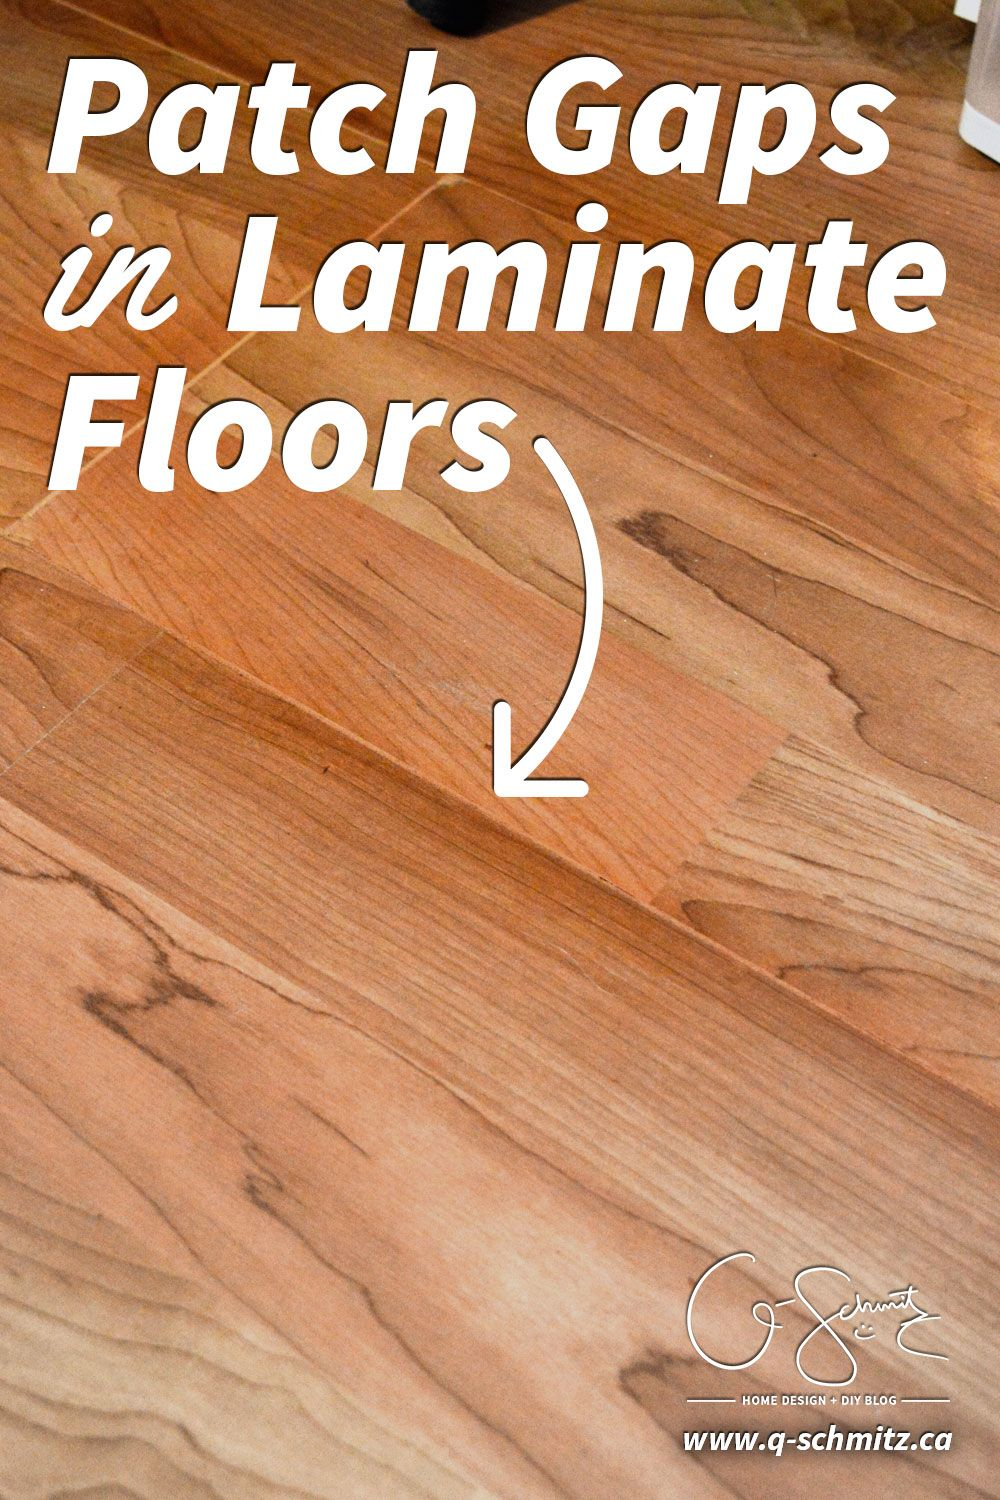 Patch Gaps In Laminate Floors Laminate Flooring Diy Laminate